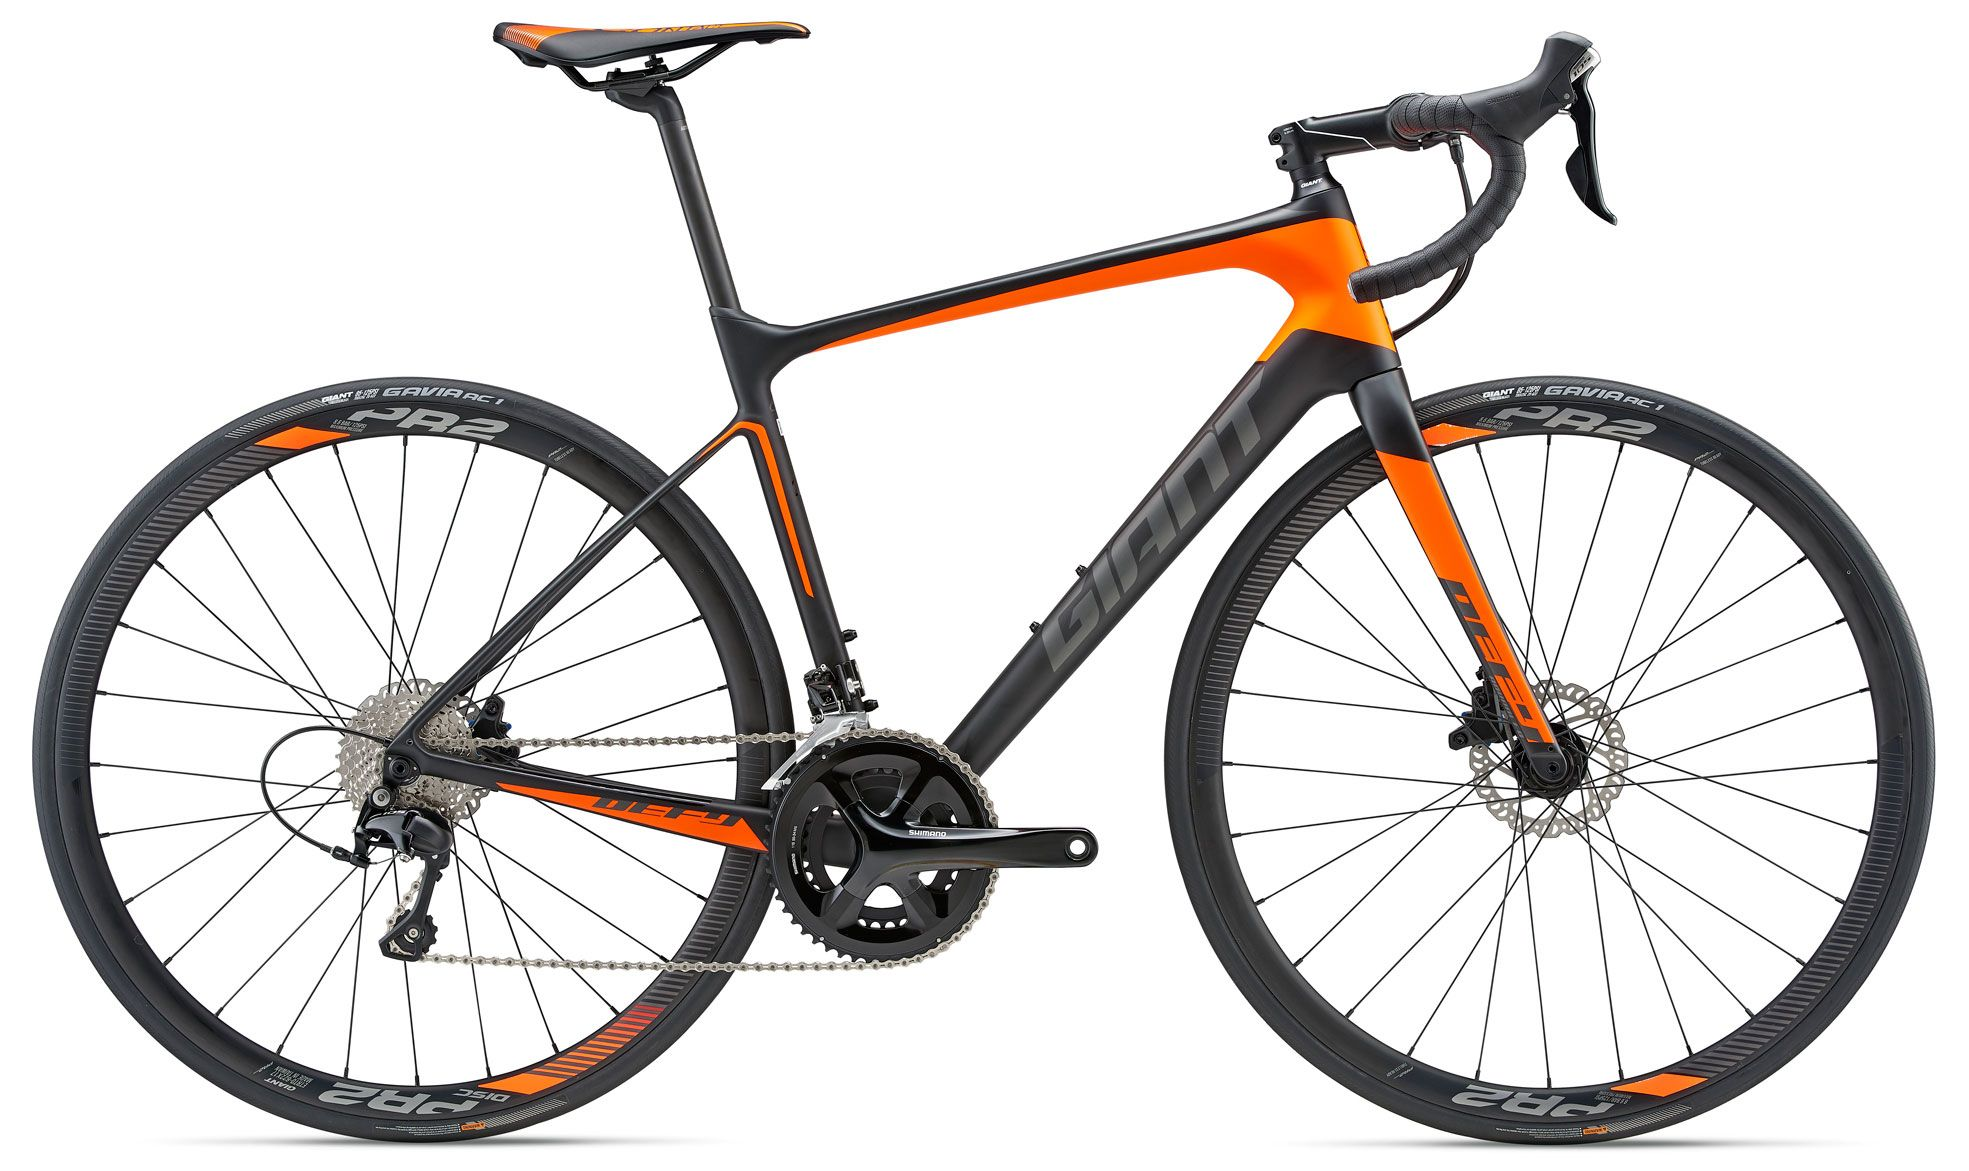 Велосипед Giant Defy Advanced 2 2018 велосипед giant tcr advanced sl 2 2017